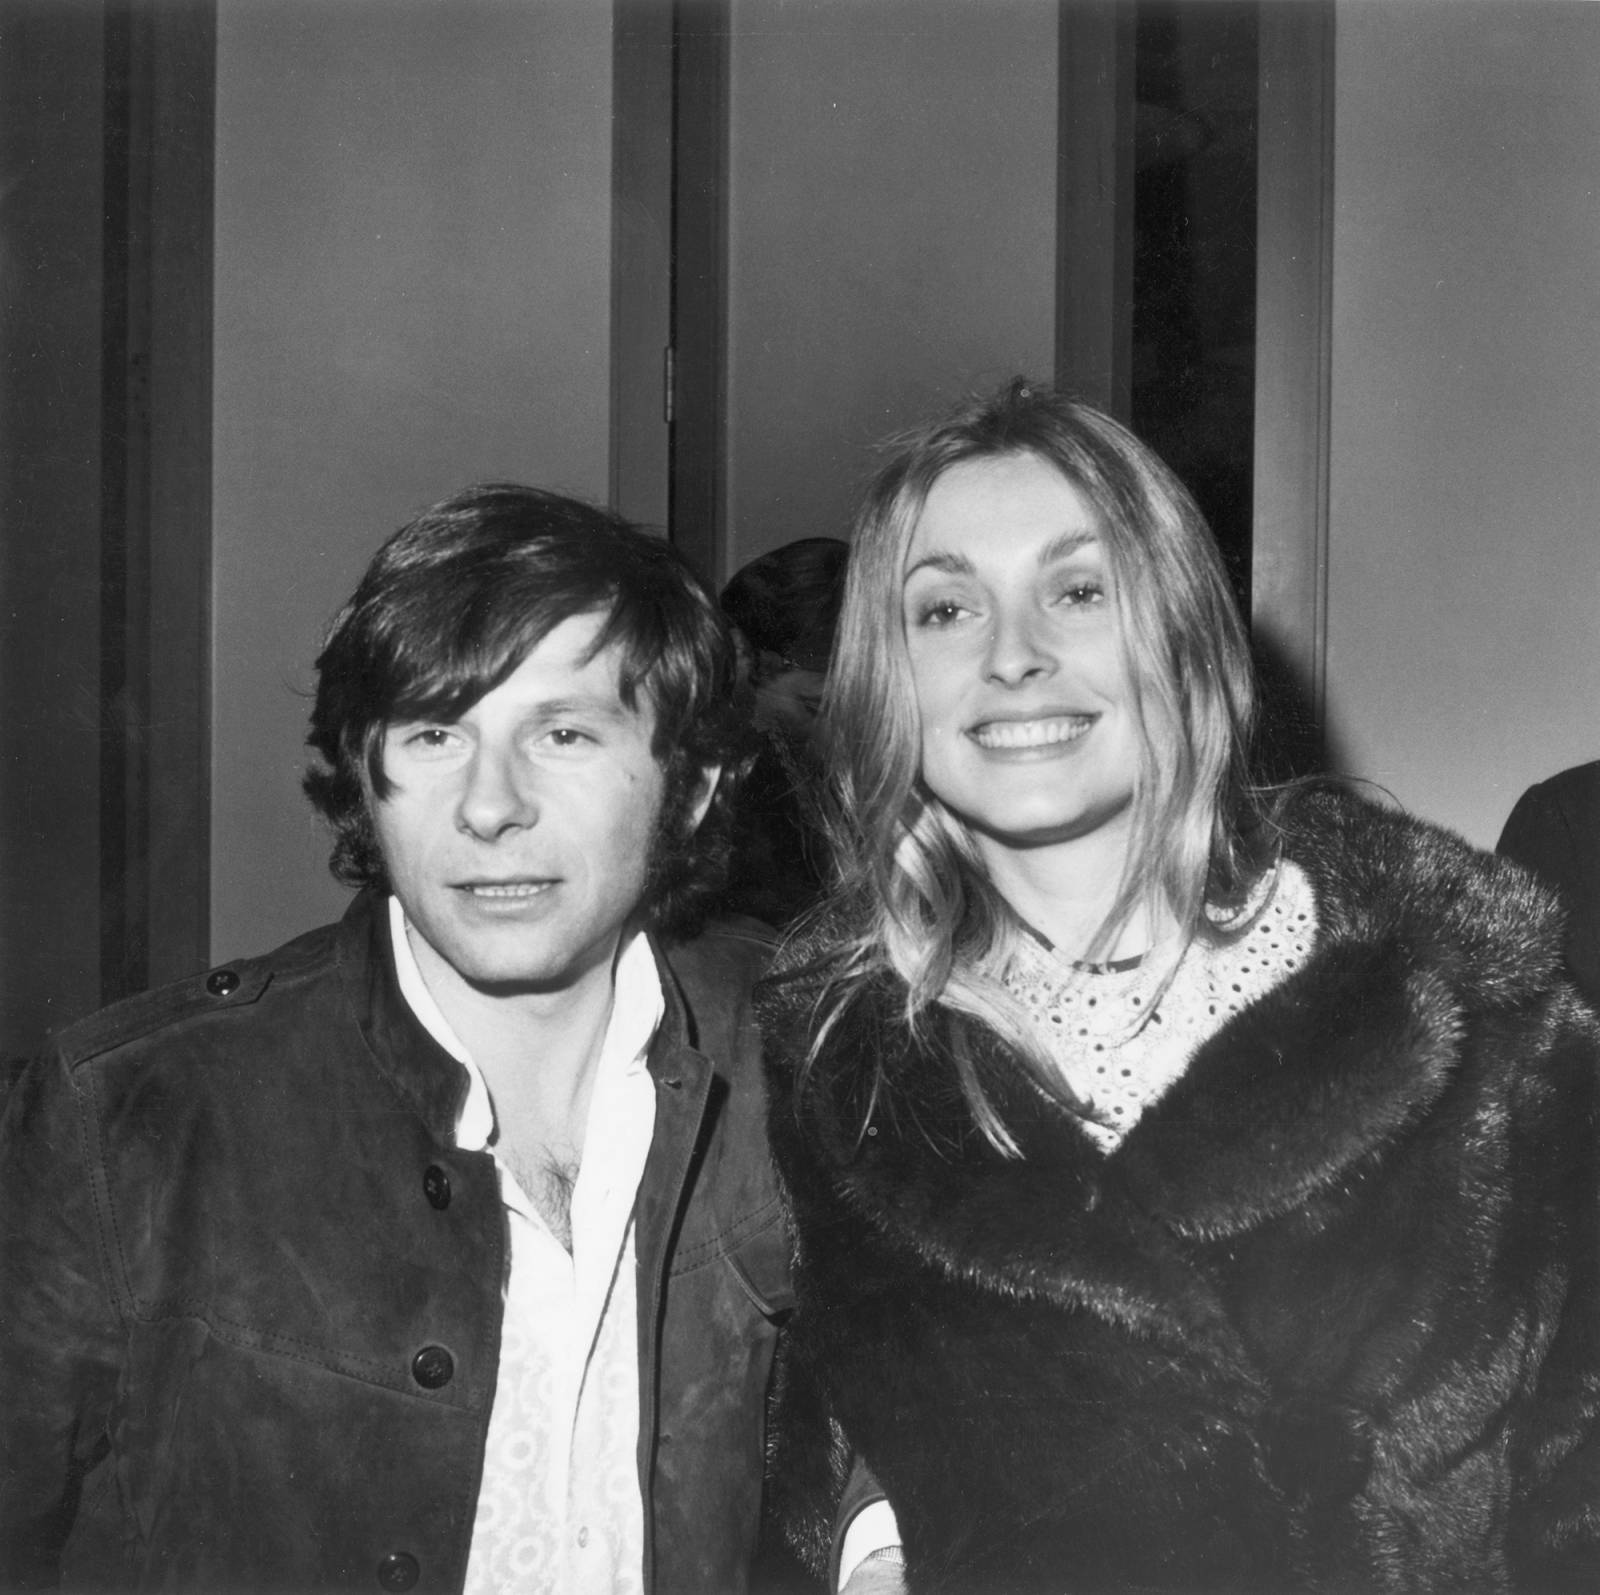 Roman Polański i Sharon Tate, marzec 1969 (Fot. Frank Edwards/Fotos International/Getty Images)